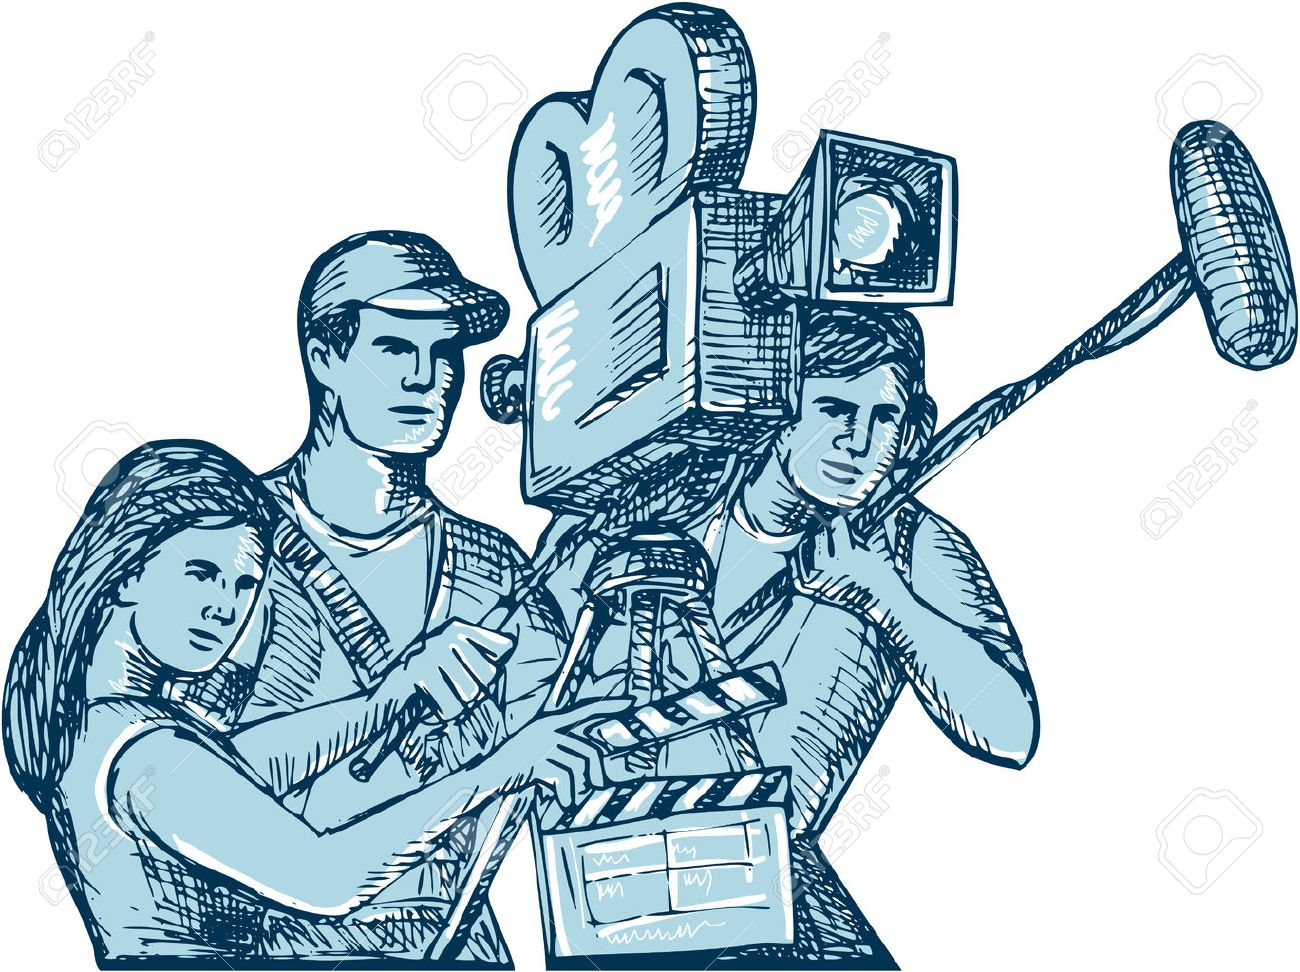 Drawing style illustration of a film crew cameraman soundman with clapperboard, microphone, video film camera filming set on isolated white background. - 40593632